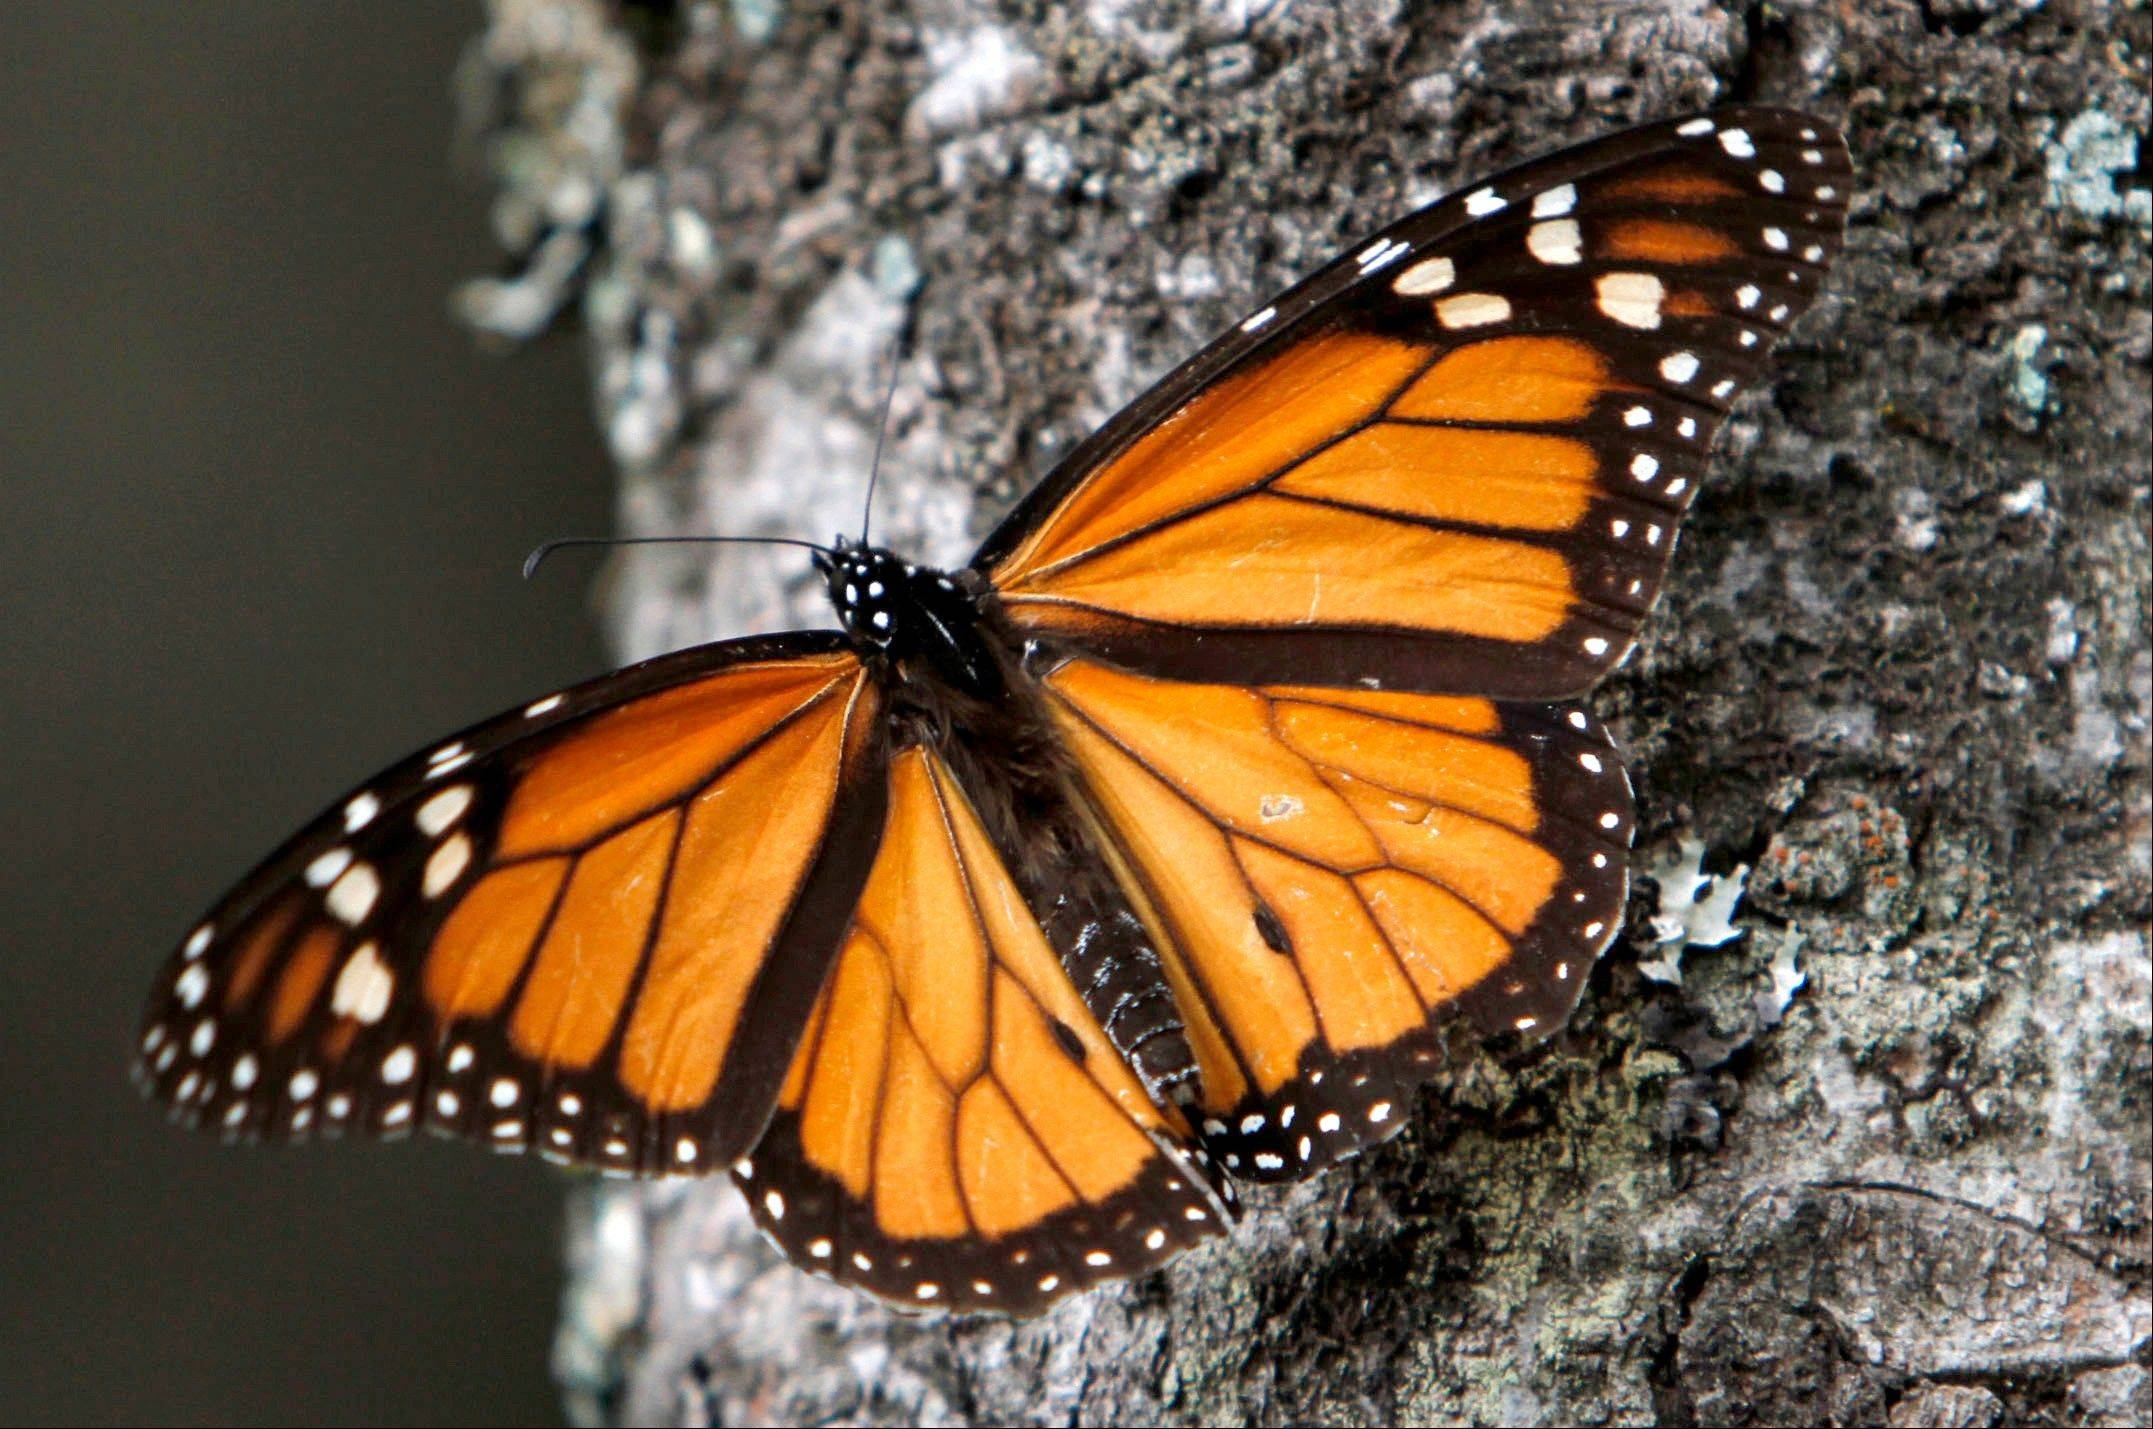 A Monarch butterfly perches on a tree at the Sierra Chincua Sanctuary in the mountains of Mexico's Michoacan state. The number of Monarch butterflies wintering in Mexico has plunged to its lowest level since studies began in 1993.